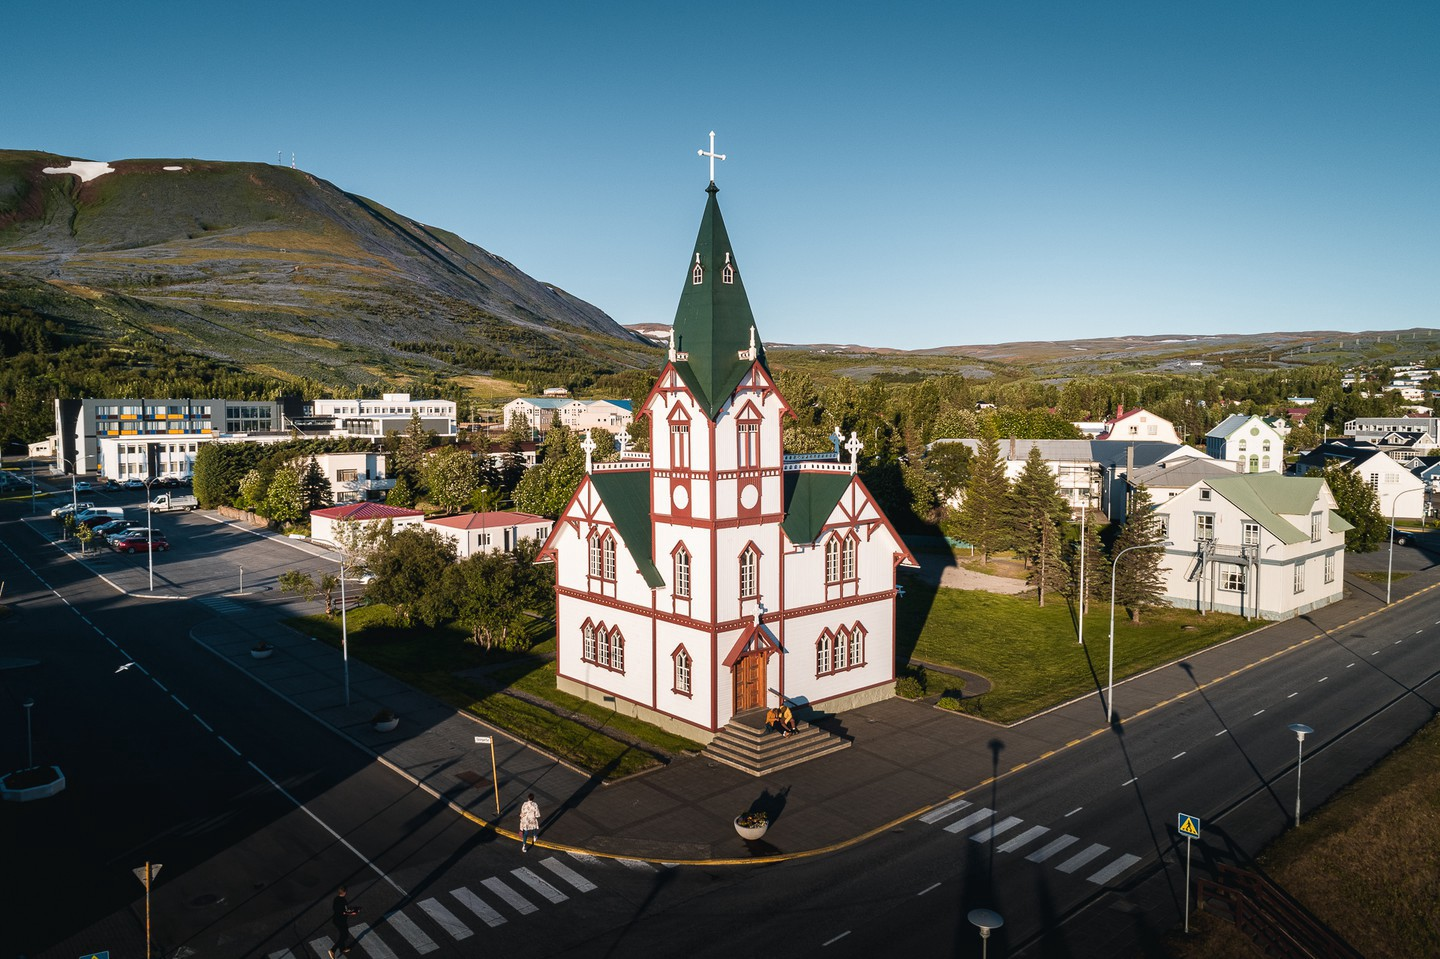 The town's most famous landmark is the Wooden Church, built in 1907 in the style of a Swiss chalet | © Ales Mucha